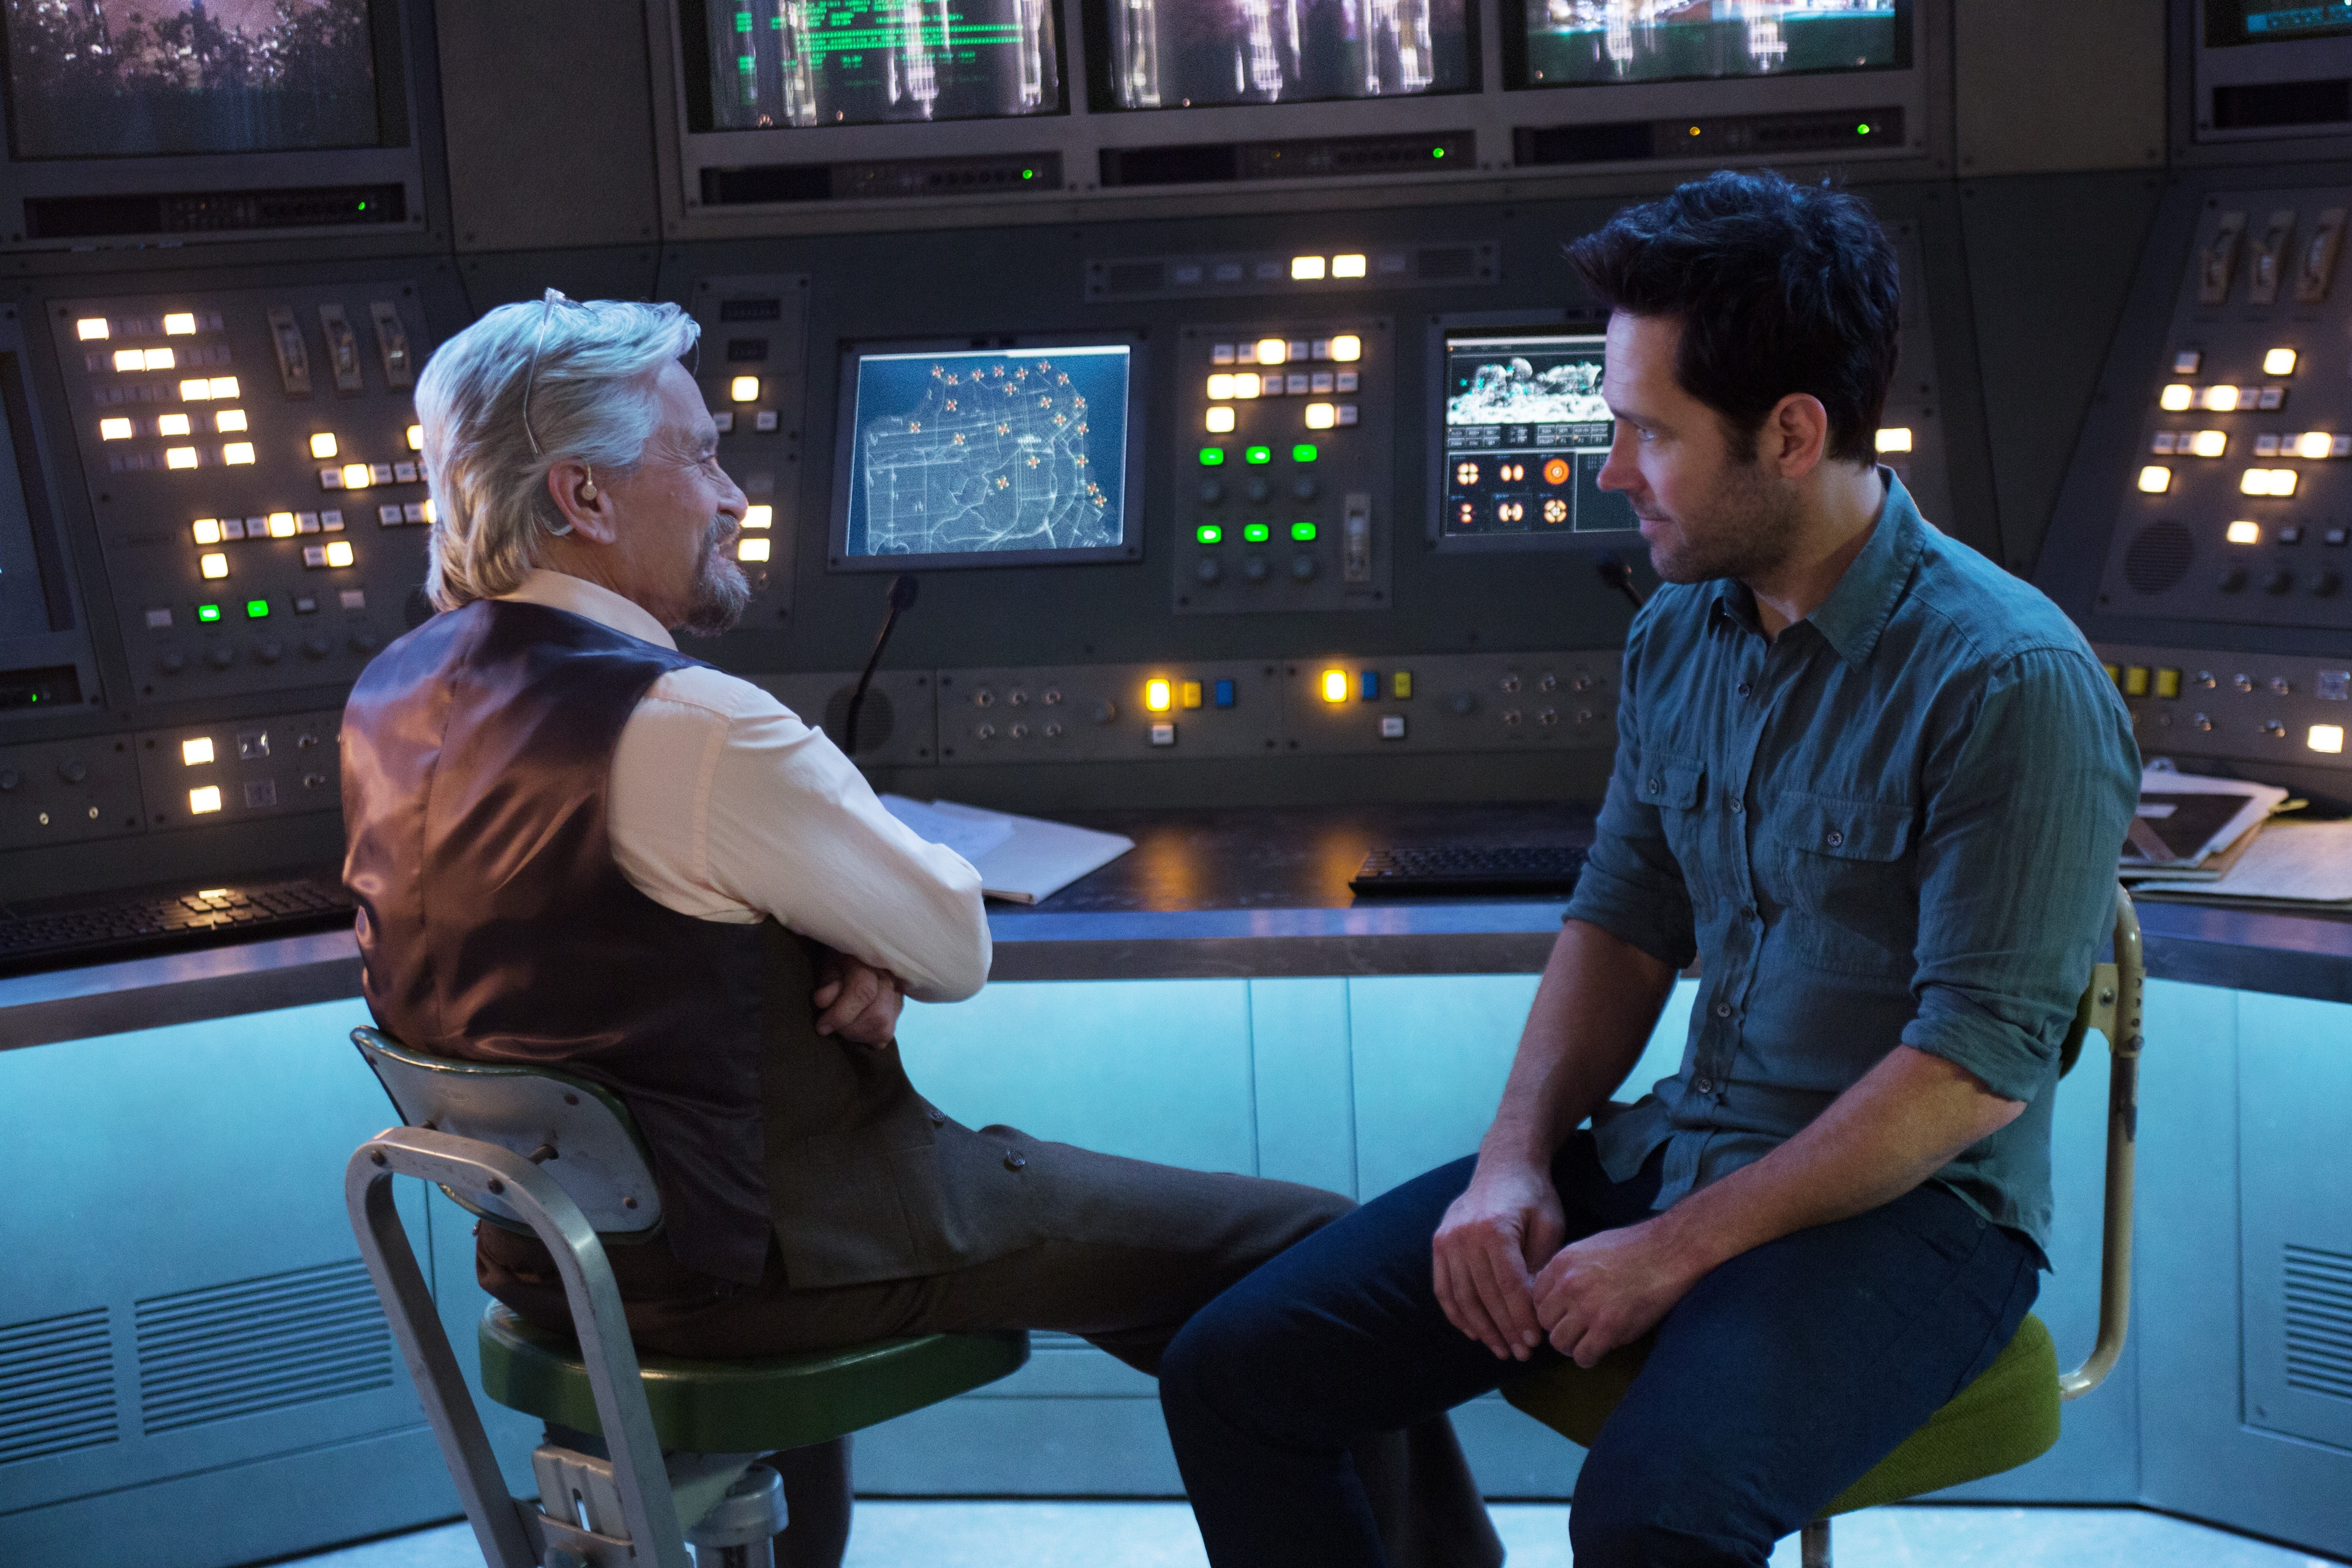 Paul Rudd (as Scott Lang) and Michael Douglas (as Hank Pym) sitting together in Ant-Man